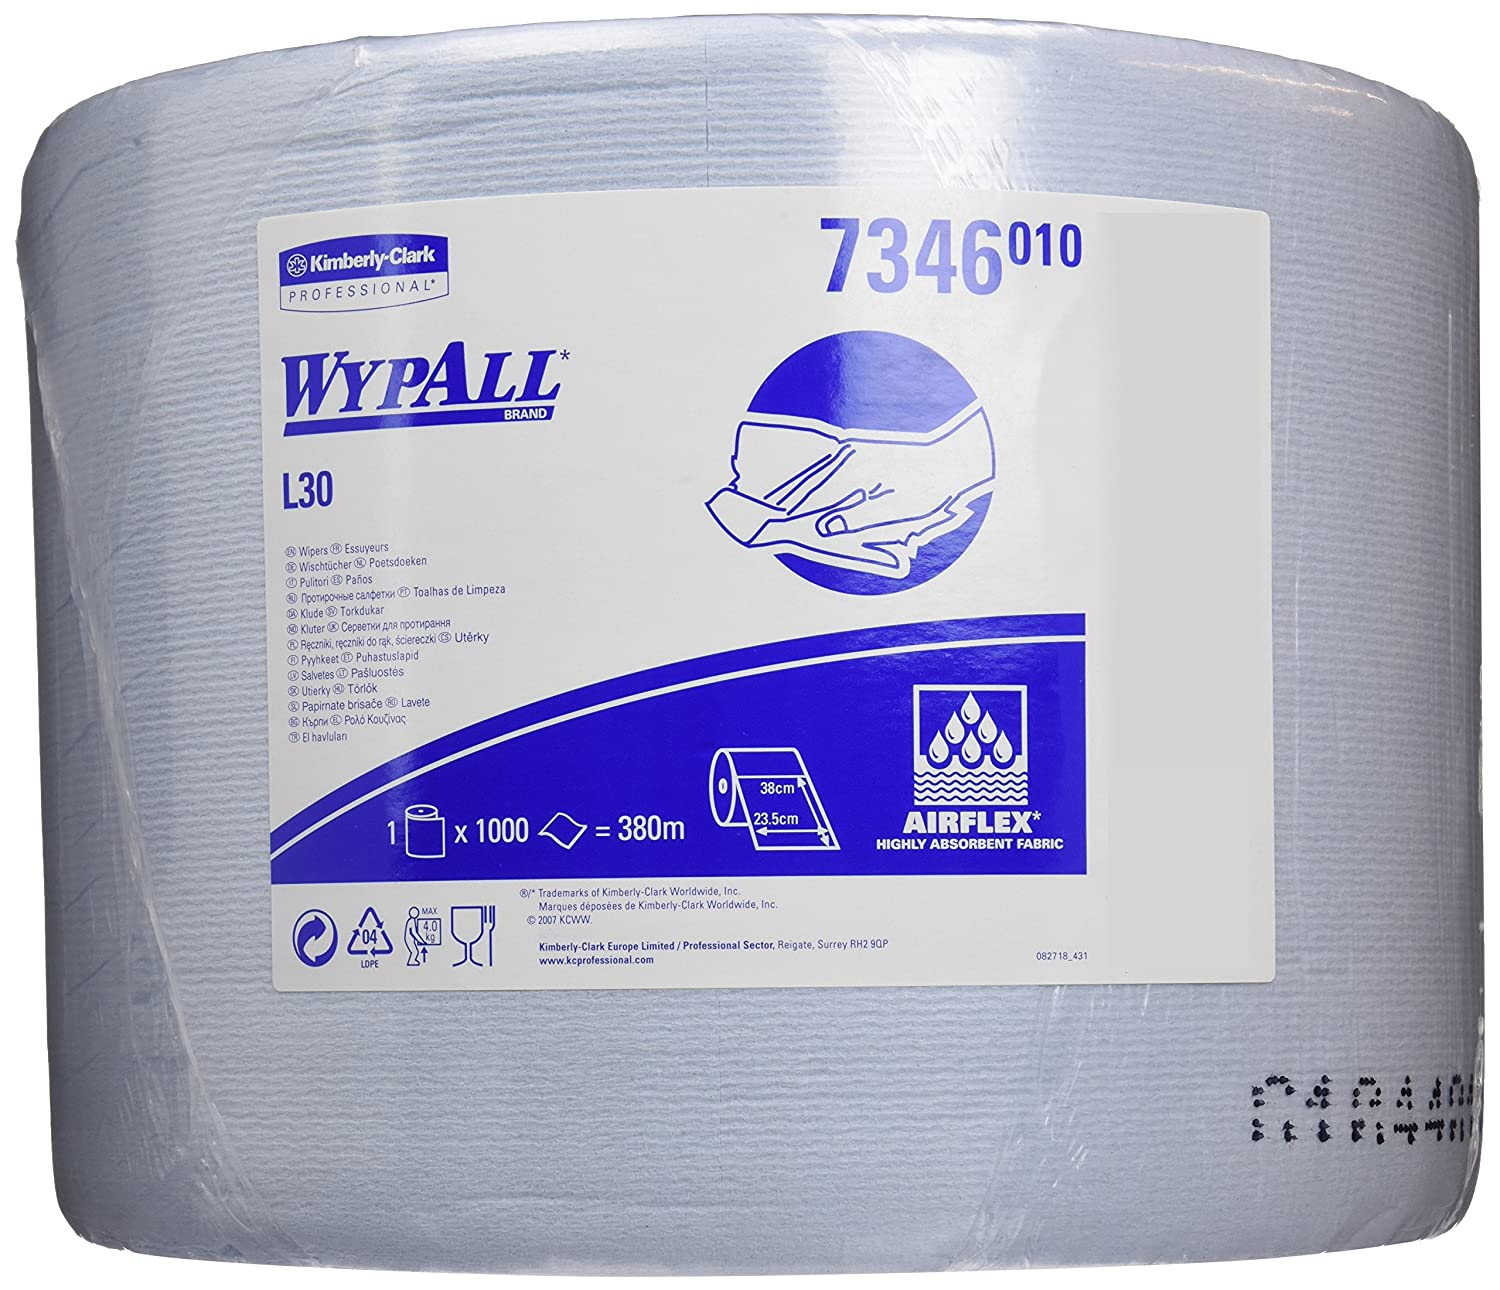 WYPALL* L20 Extra Wiper Large Roll 7346 - 1 roll x 1,000 blue, 2 ply sheets Kimberly-Clark Professional (EU)